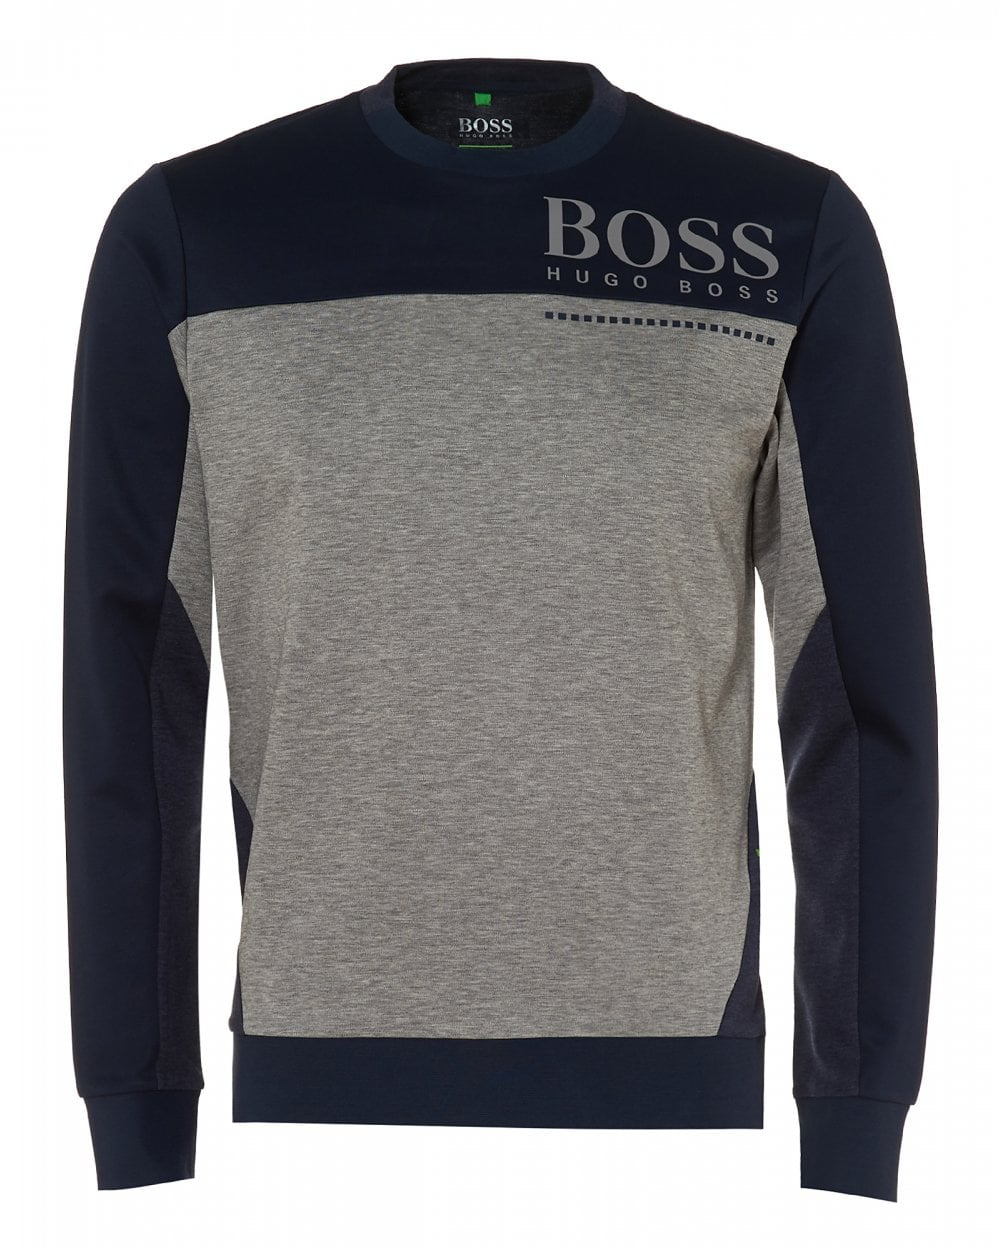 a0bd6be54ca BOSS Athleisure Mens Saltech Sweatshirt, Two Tone Navy Blue Sweat